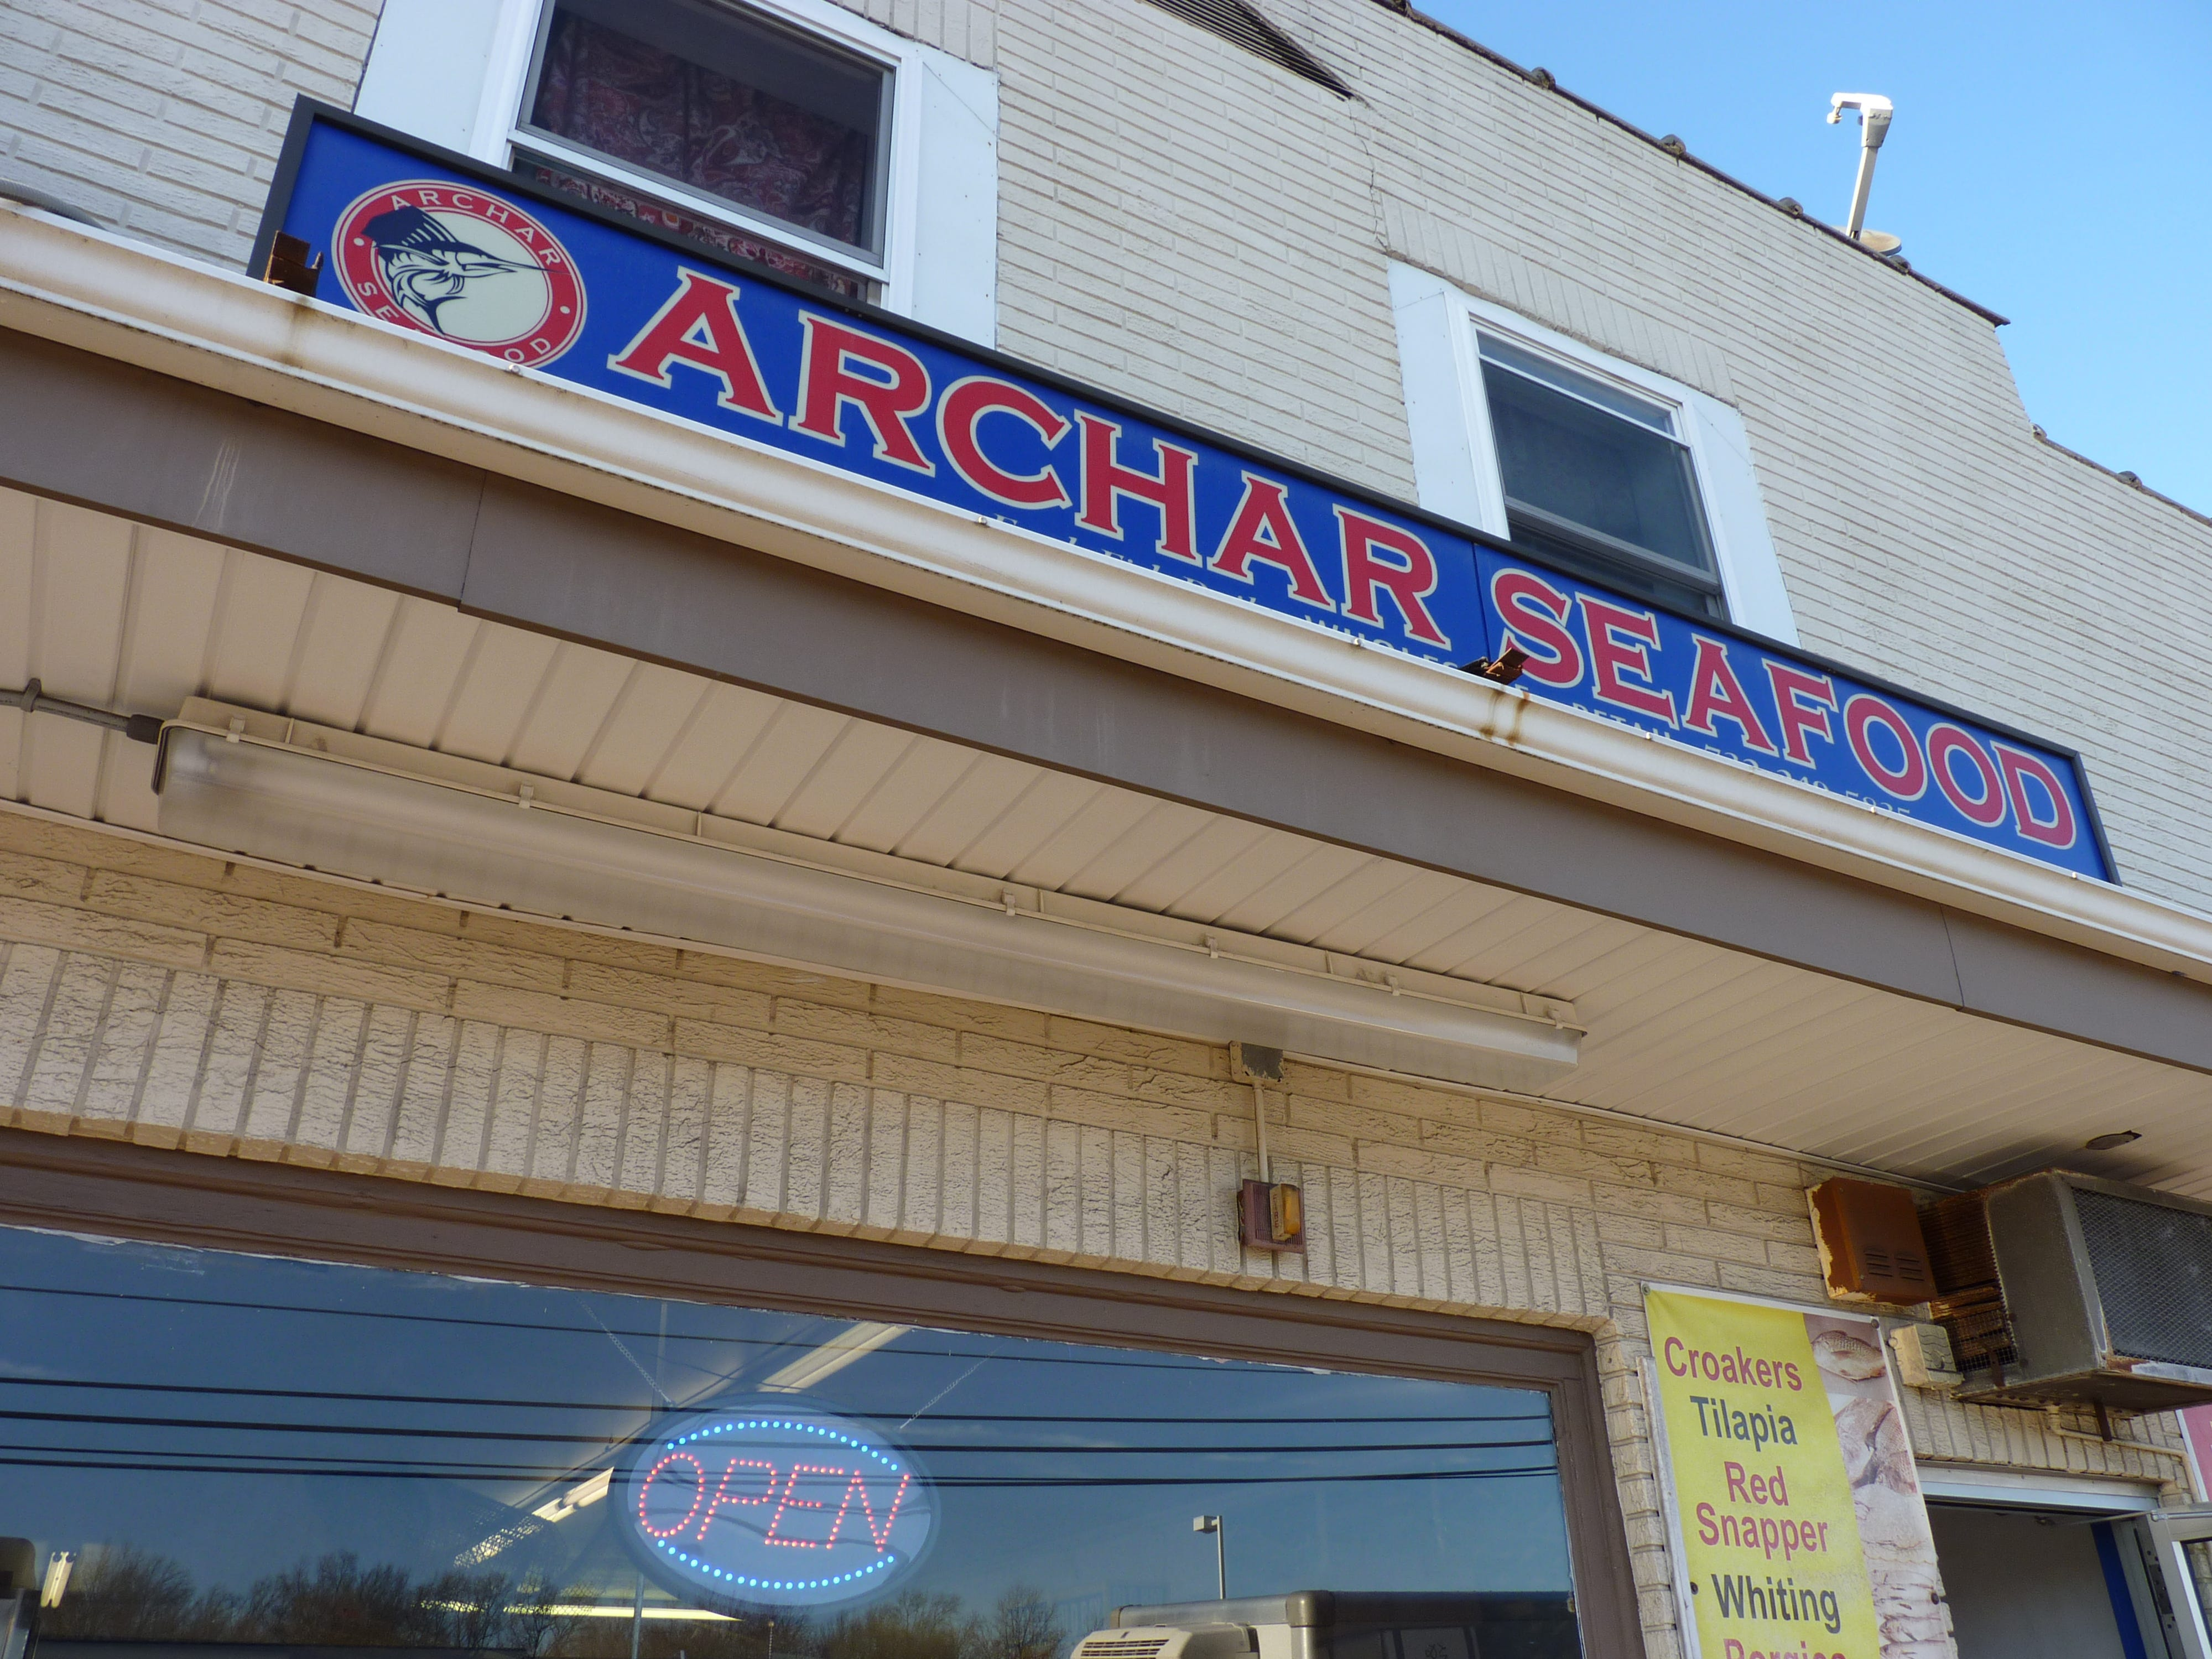 Archar Seafood in the Somerset Section of Franklin Township.